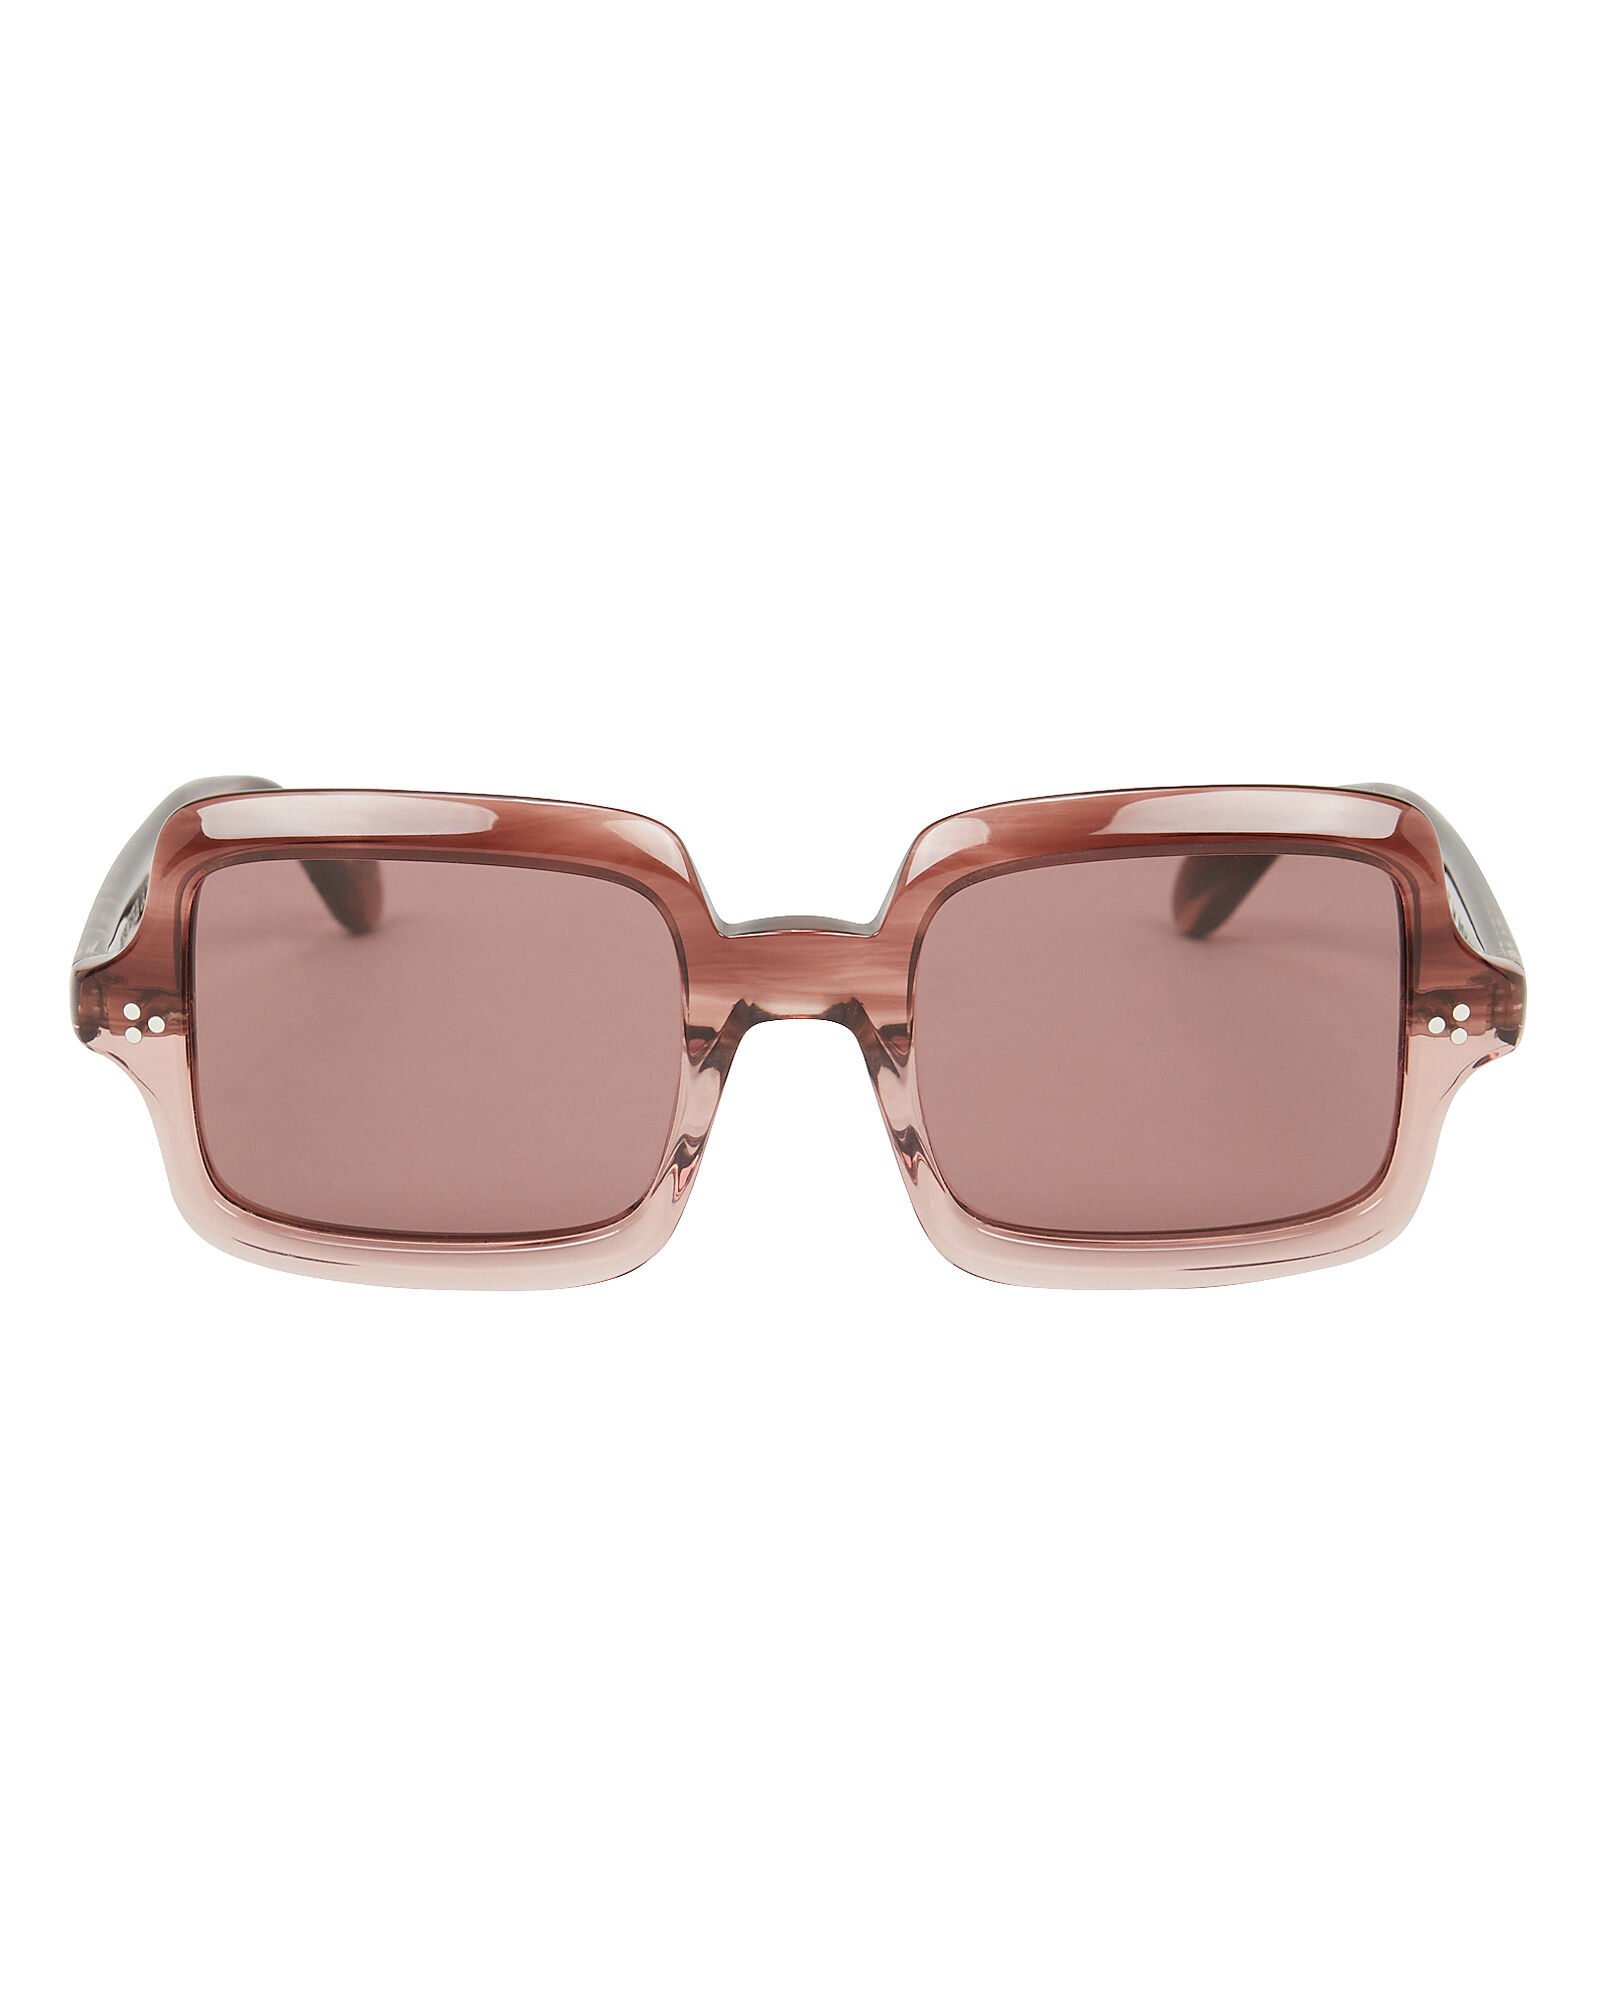 Avri Square Sunglasses, PINK/GRADIENT, hi-res